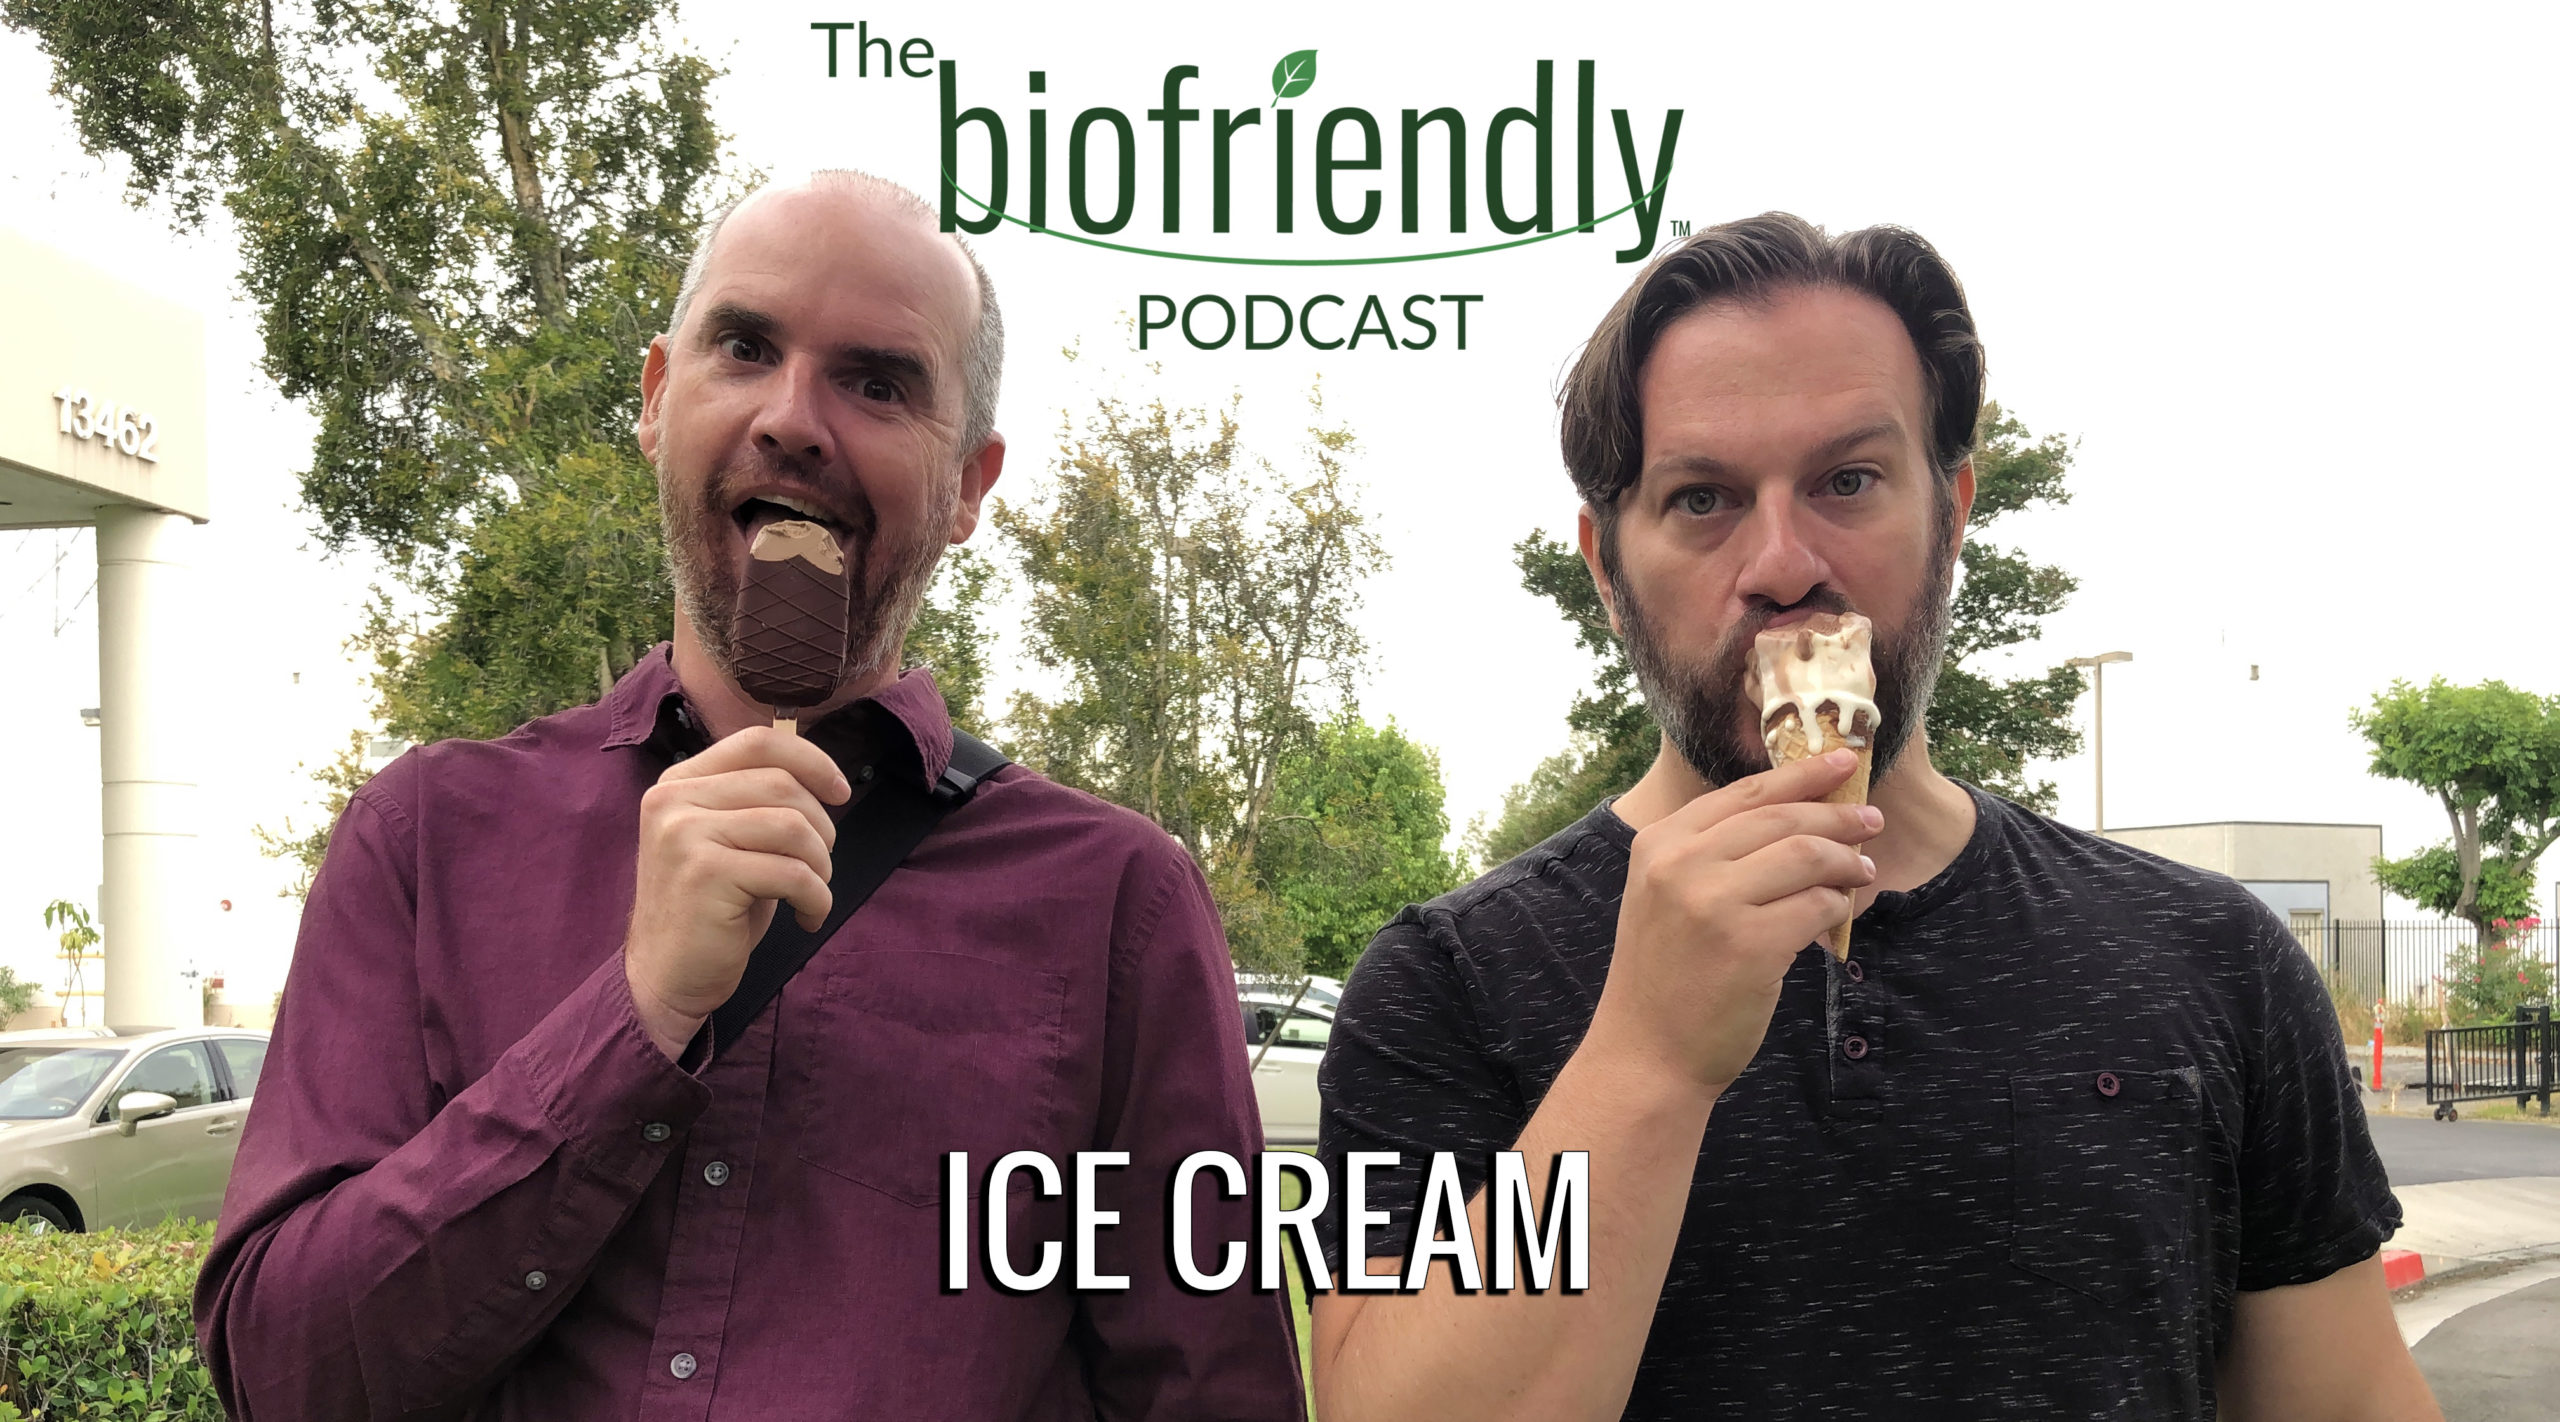 The Biofriendly Podcast - Episode 24 - Ice Cream